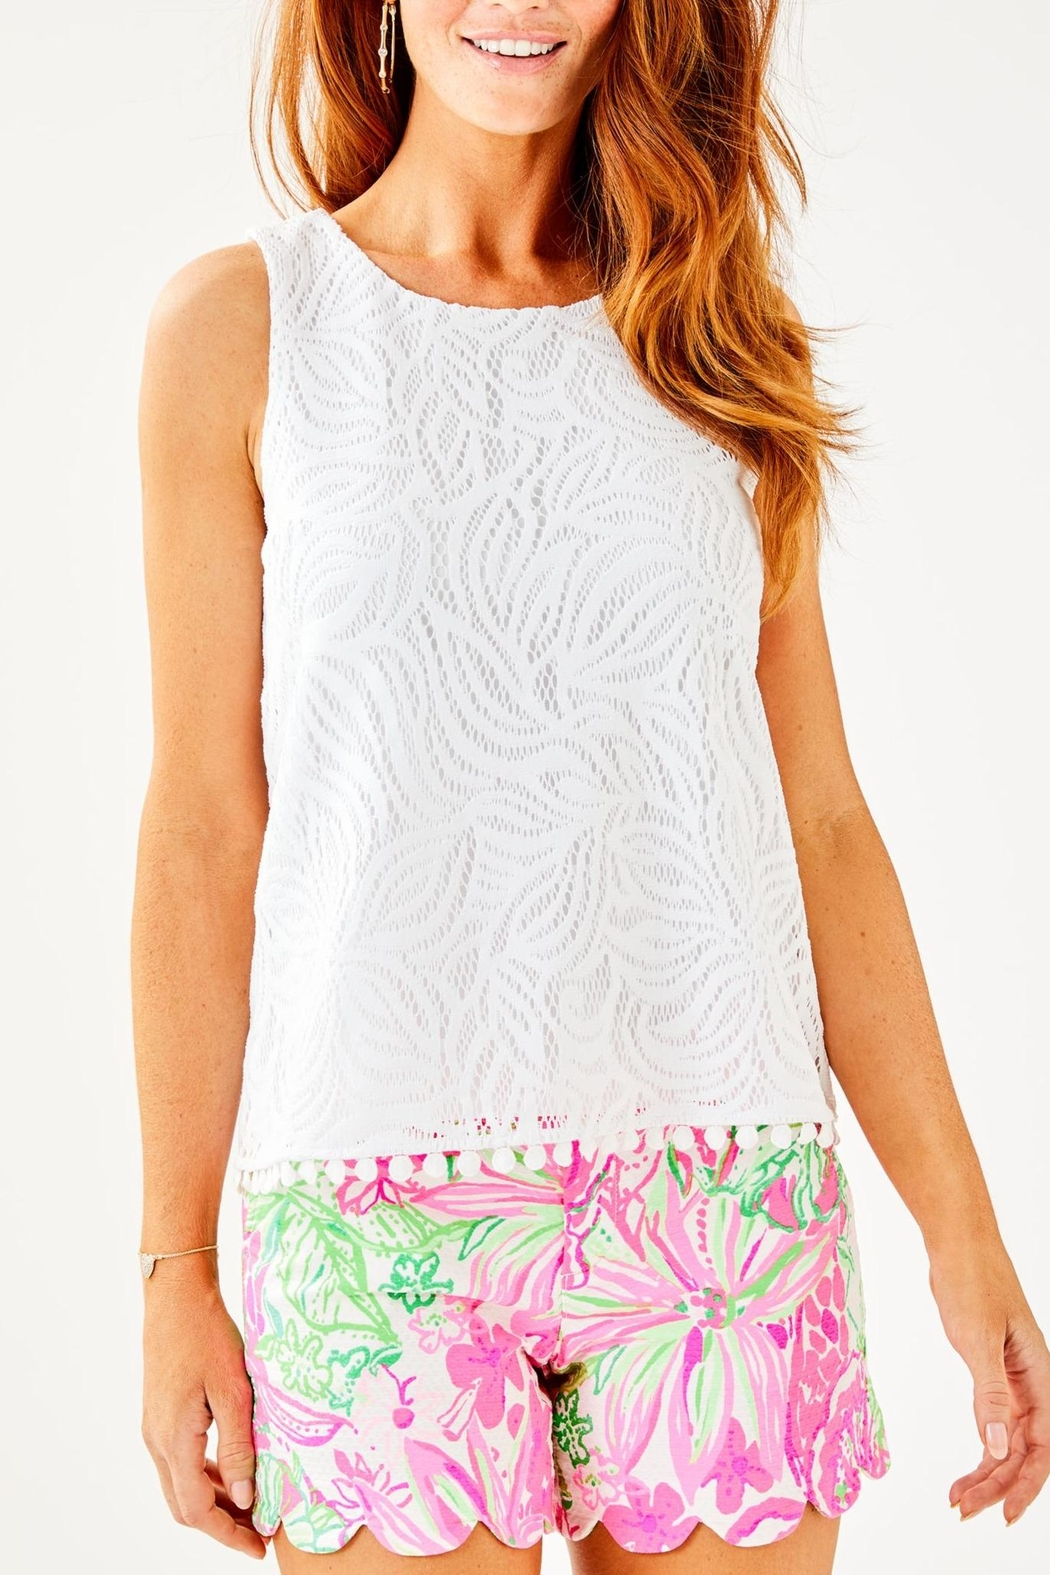 Lilly Pulitzer Maybelle Top - Main Image